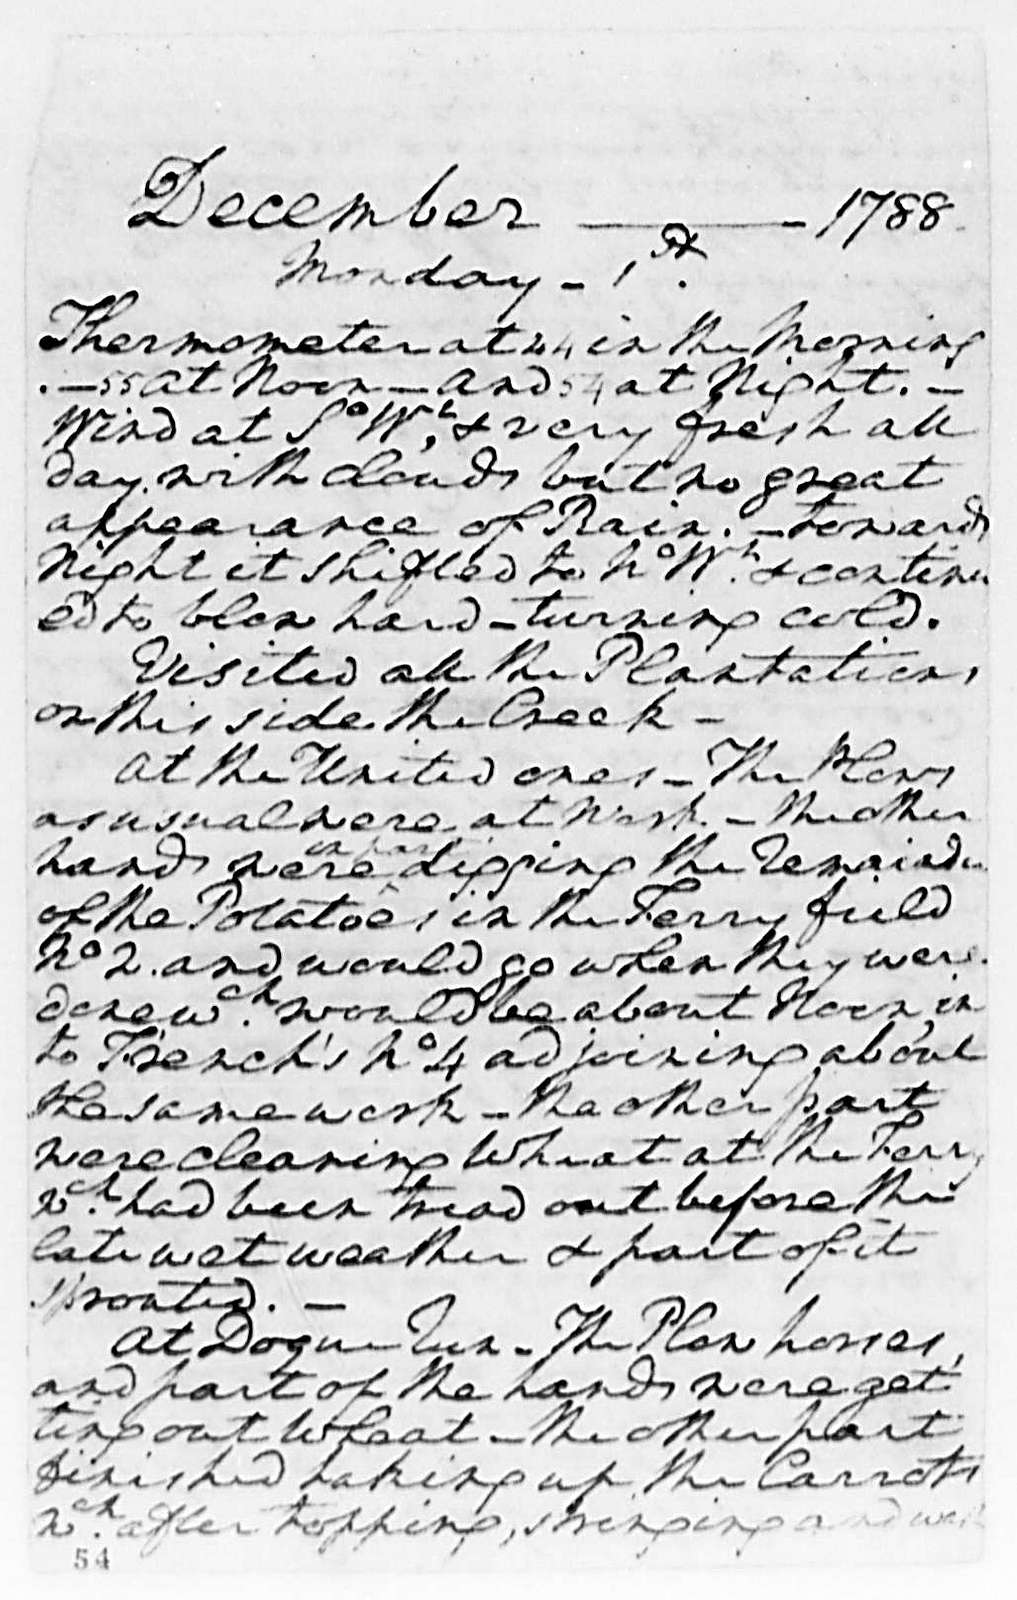 George Washington Papers, Series 1, Exercise Books, Diaries, and Surveys 1745-99, Subseries 1B, Diaries 1748-1799: Diary, August 1, 1788 - February 2, 1789